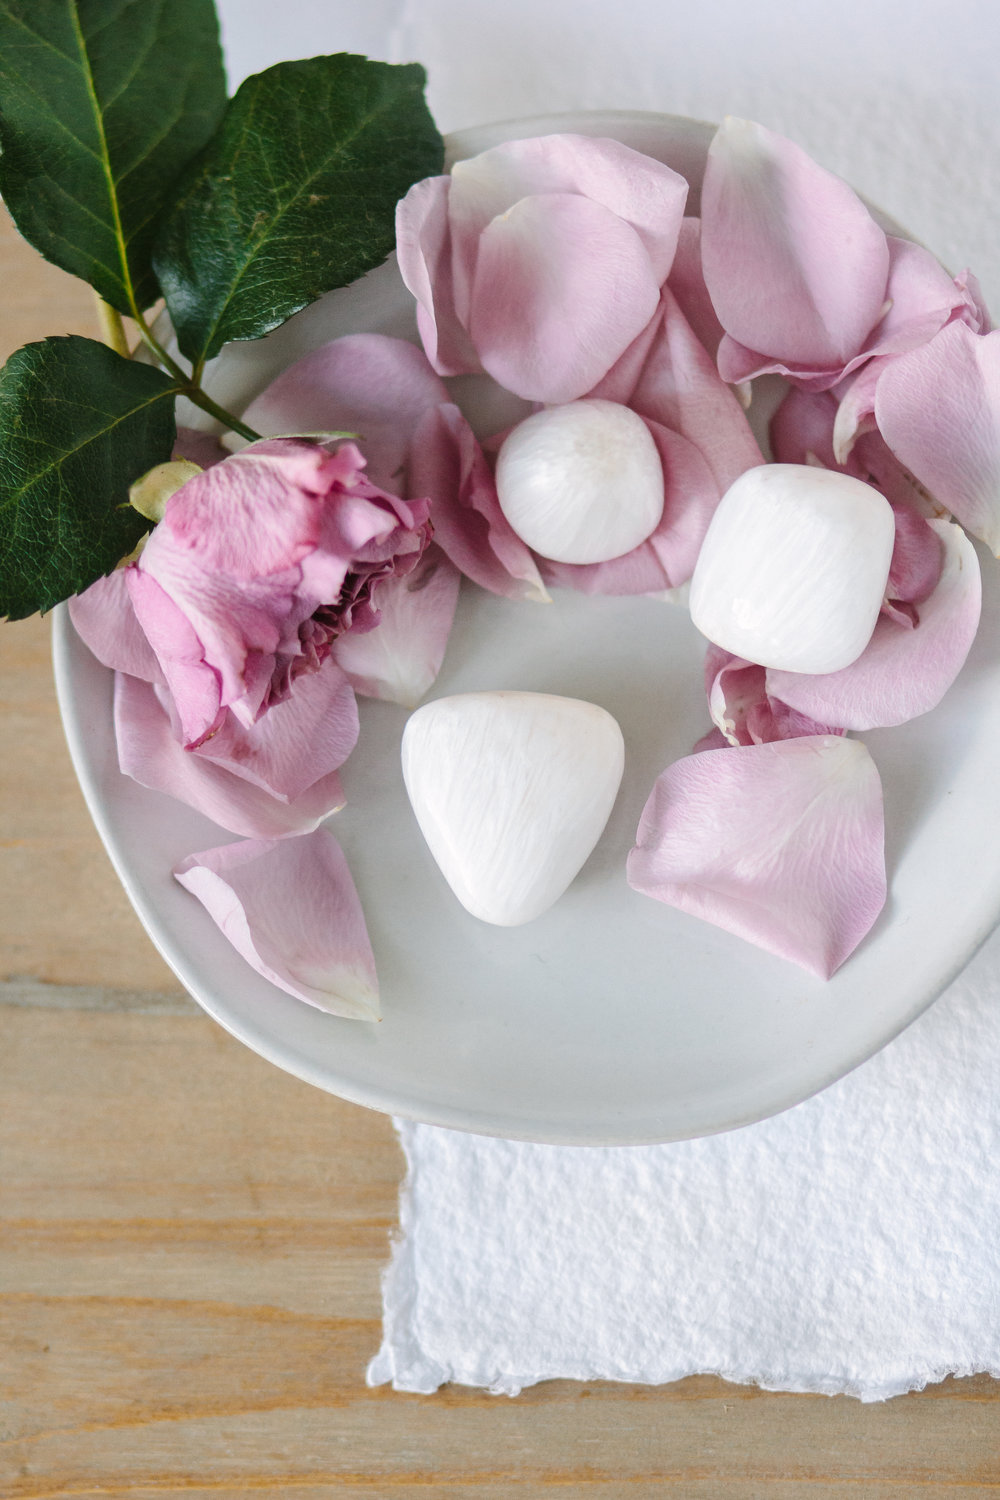 Scolicite and Roses-8690.JPG